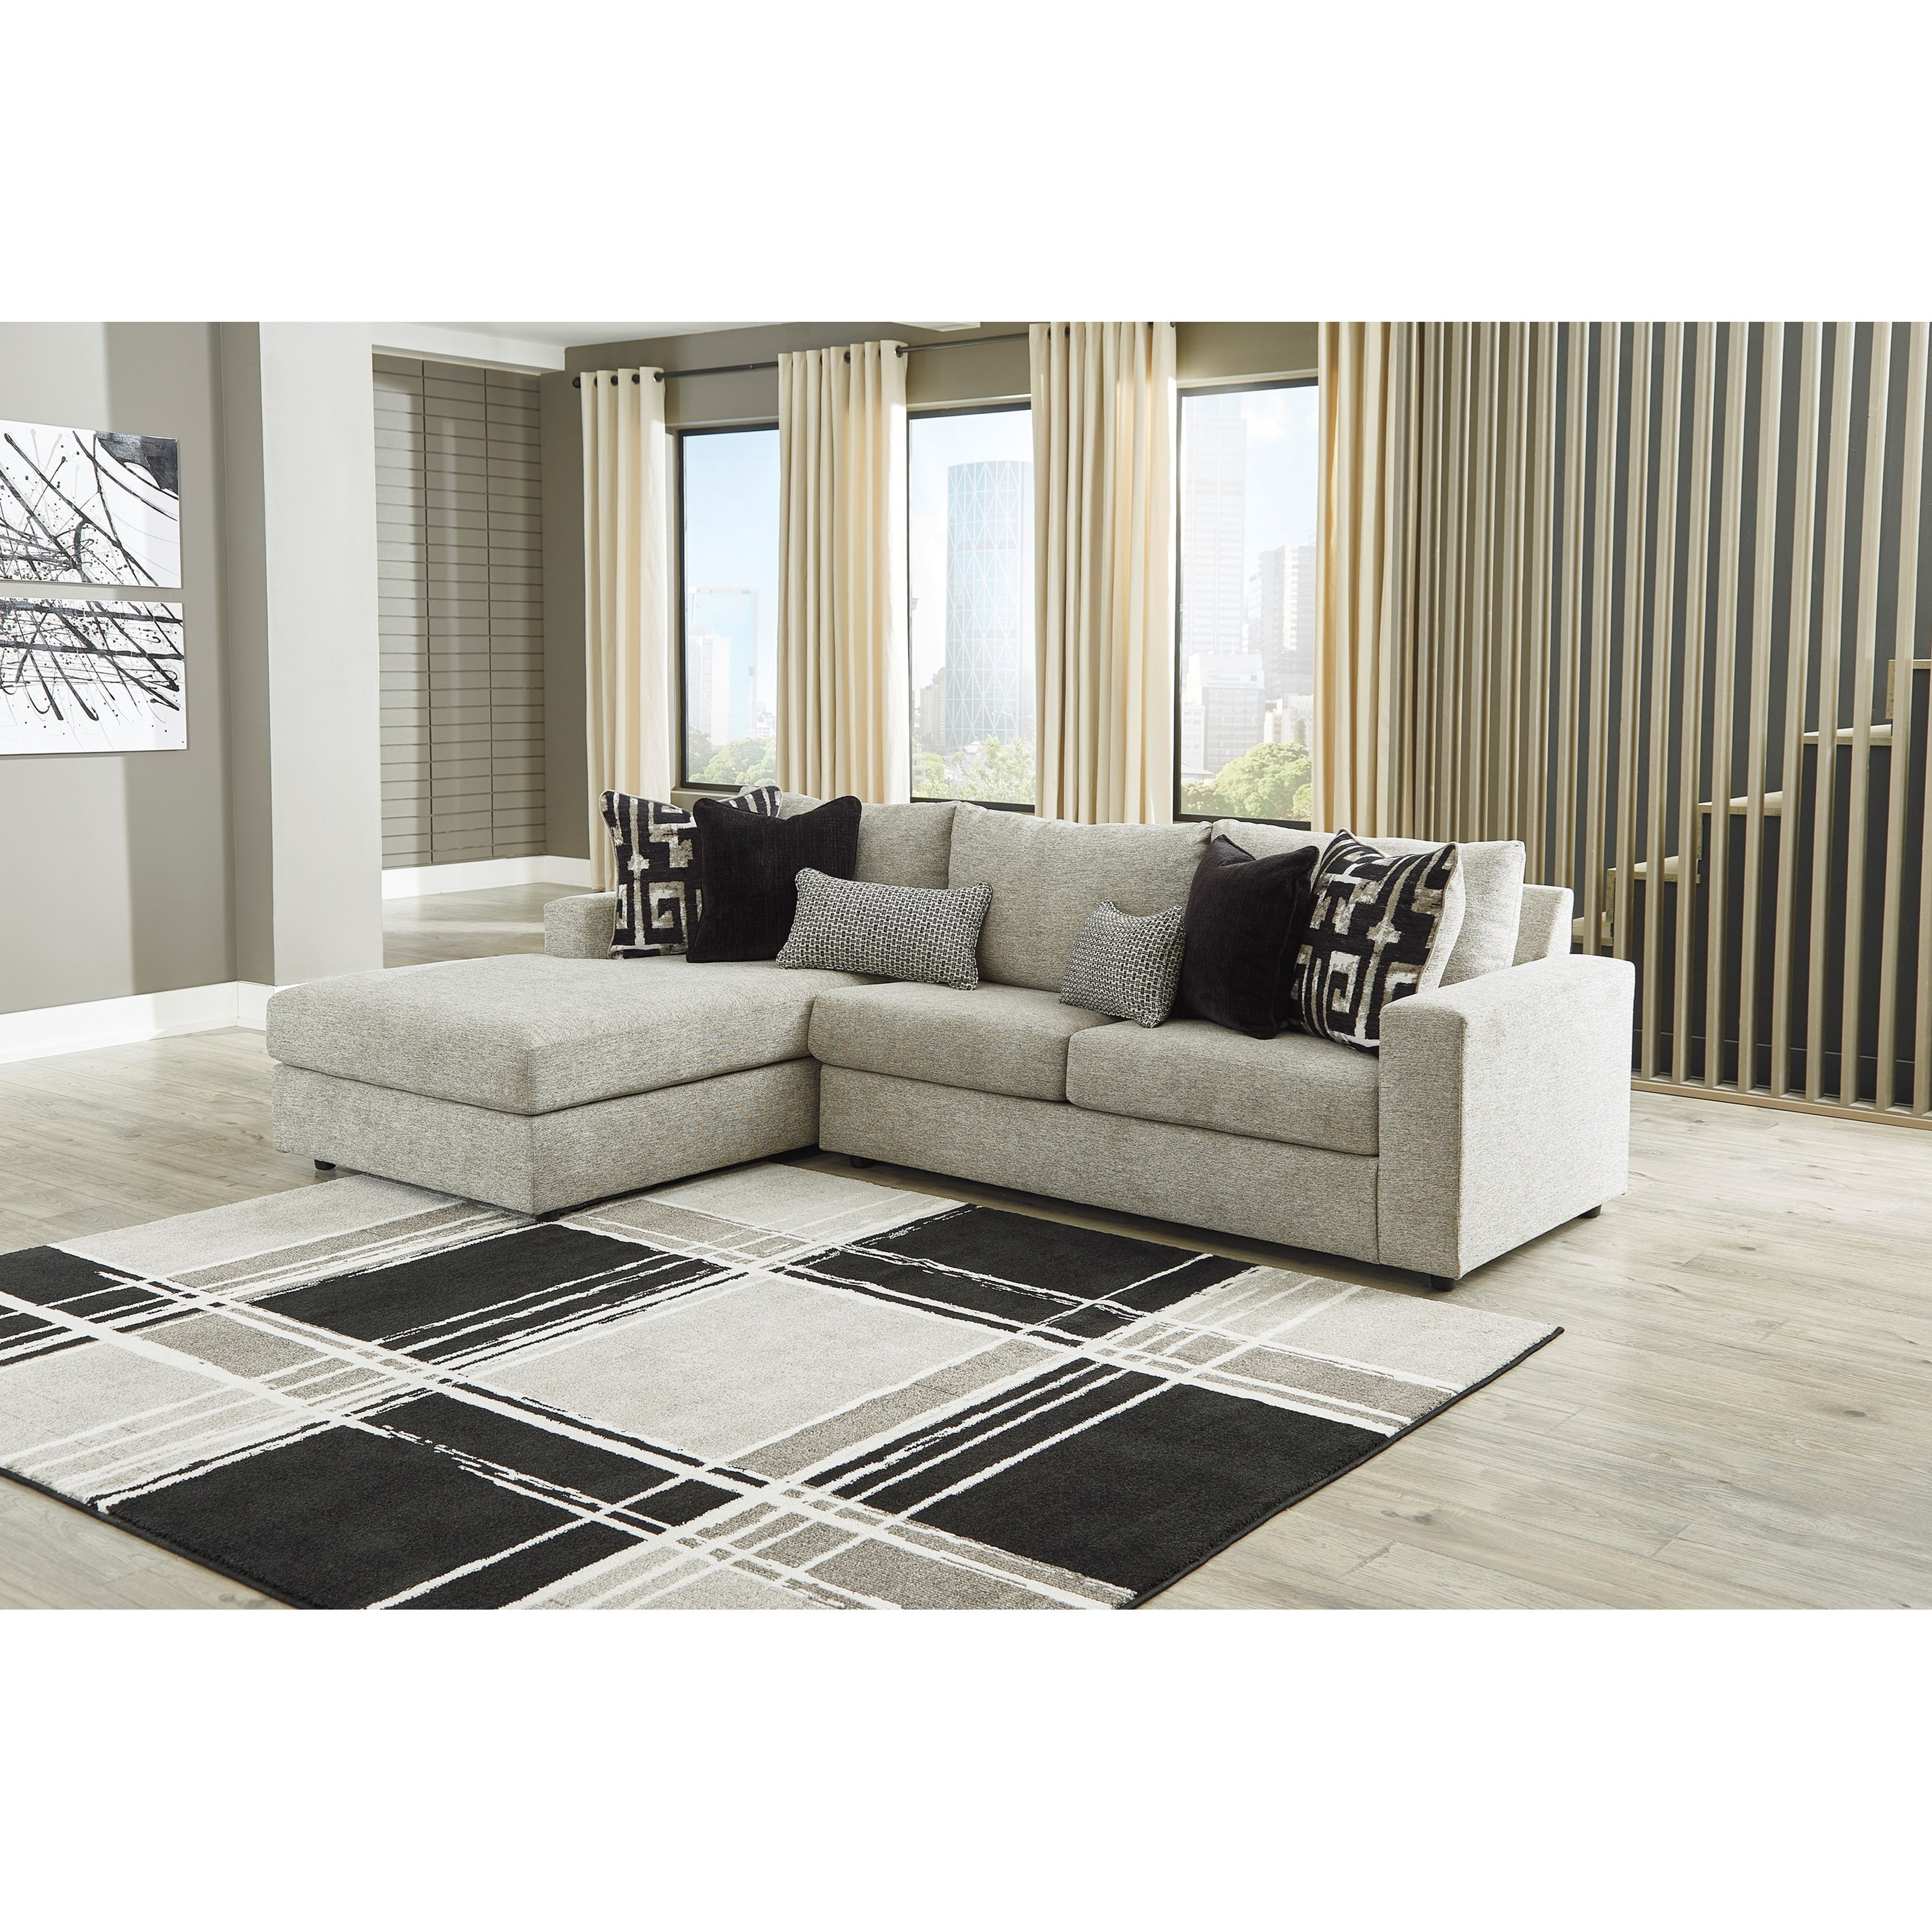 ravenstone 3 seat sectional sofa w laf chaise